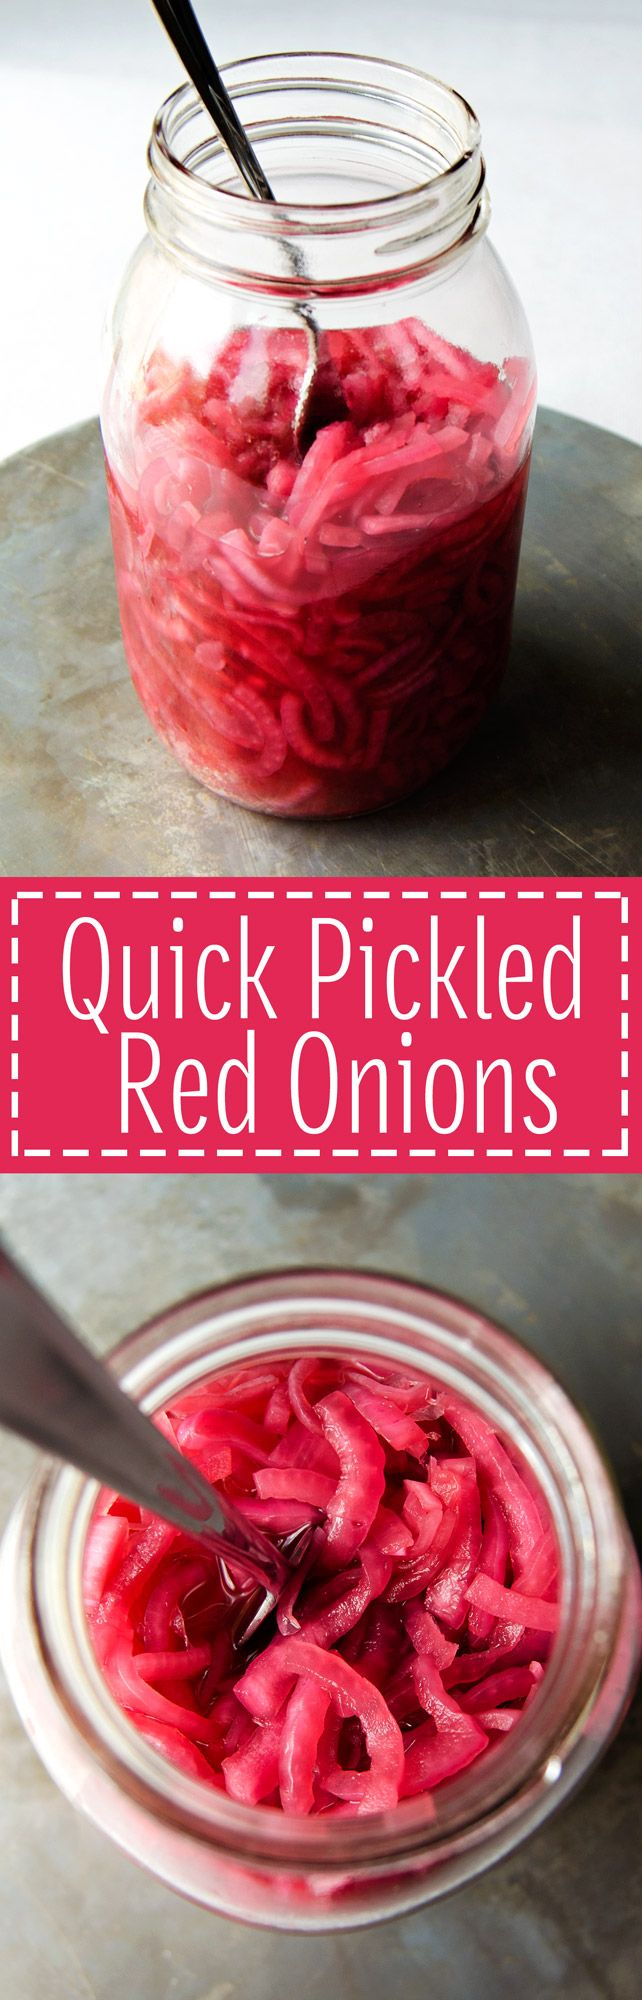 Quick Pickled Red Onions - How to make super easy quick pickled onions that are tangy and packed with flavor. (Vegan & GF) | RECIPE at NomingthruLife.com